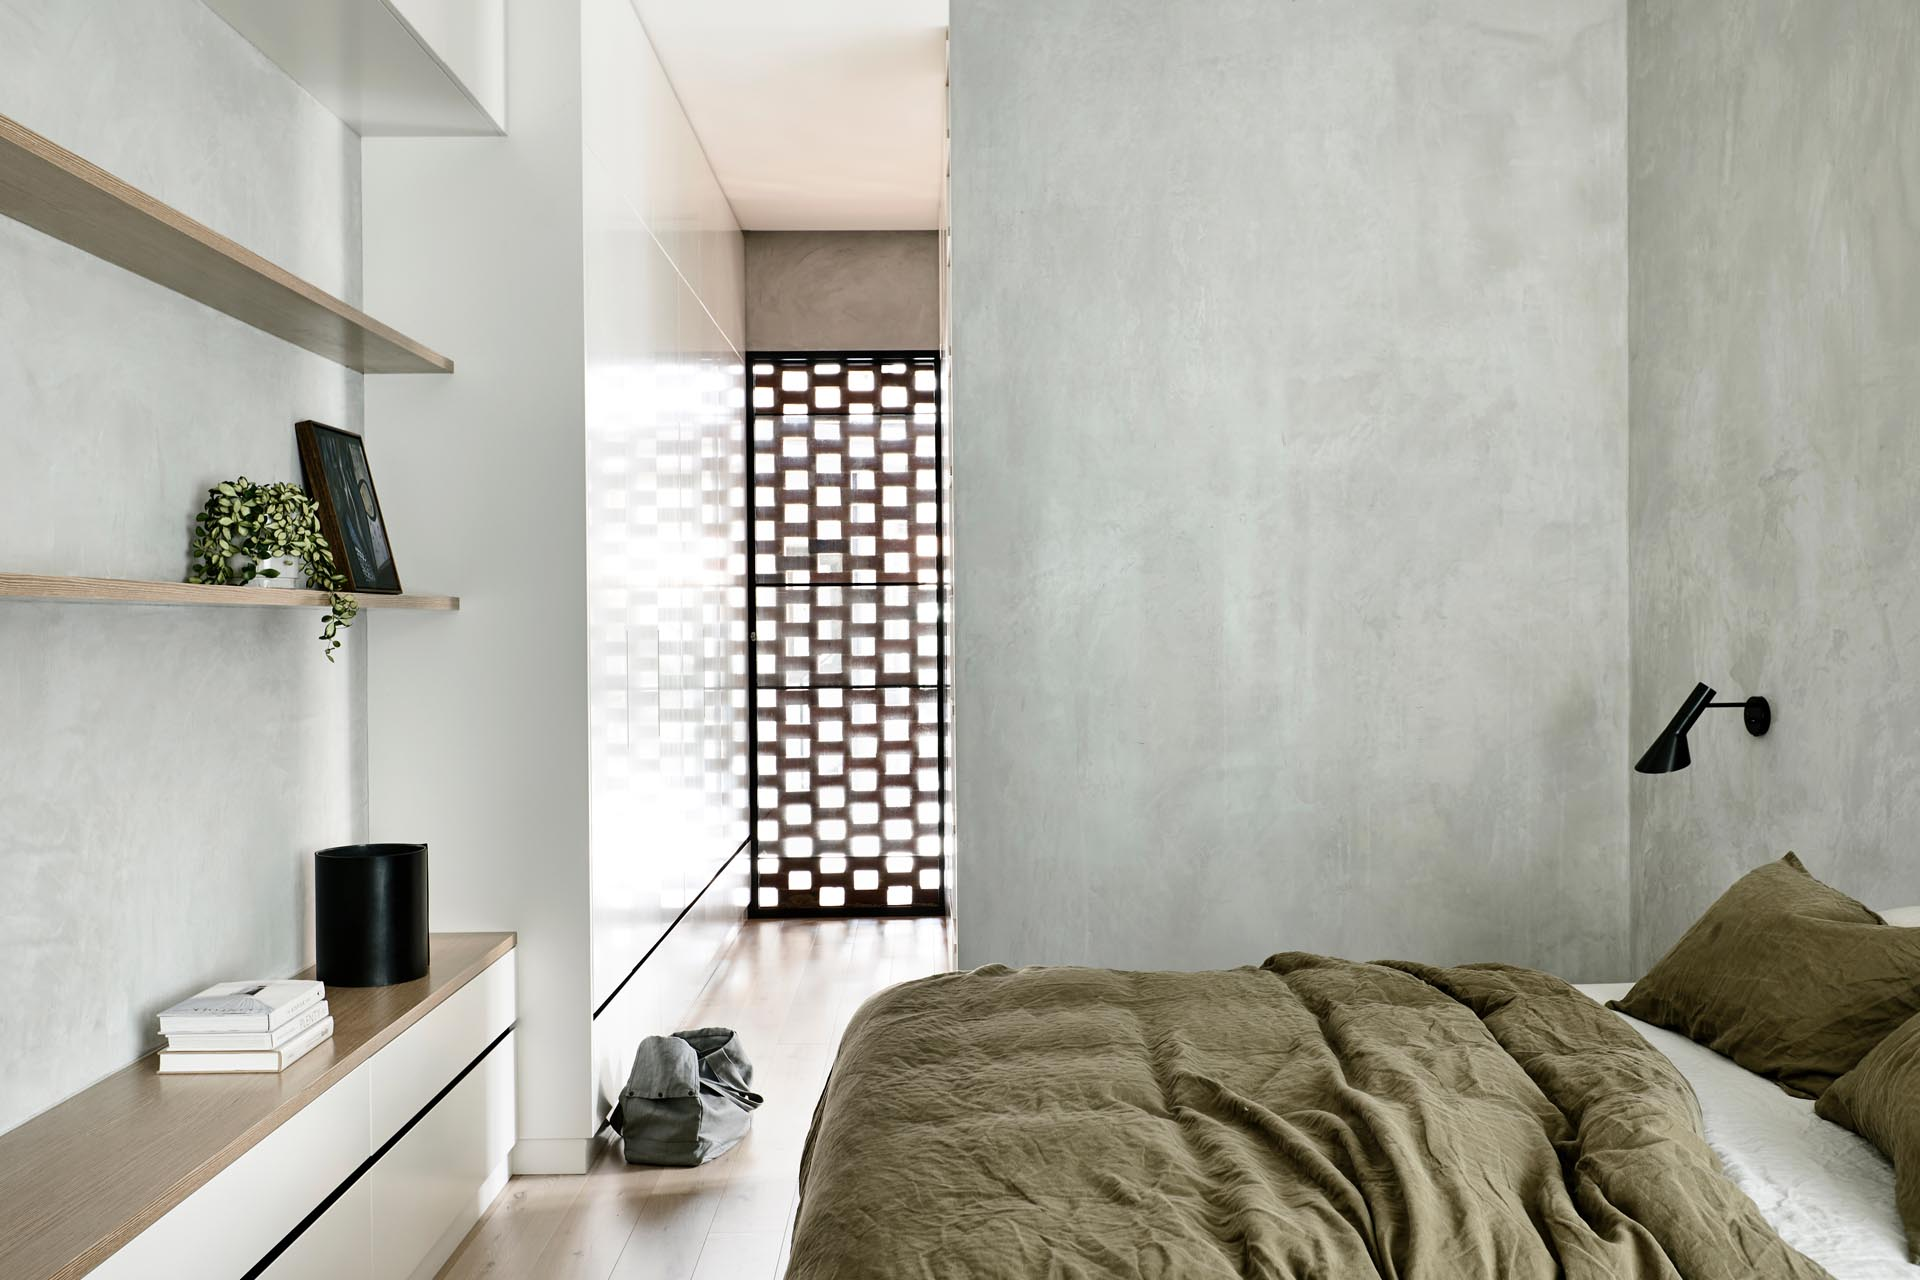 A simple yet modern bedroom design that takes advantage of the light through the brickwork at the end of the closet.